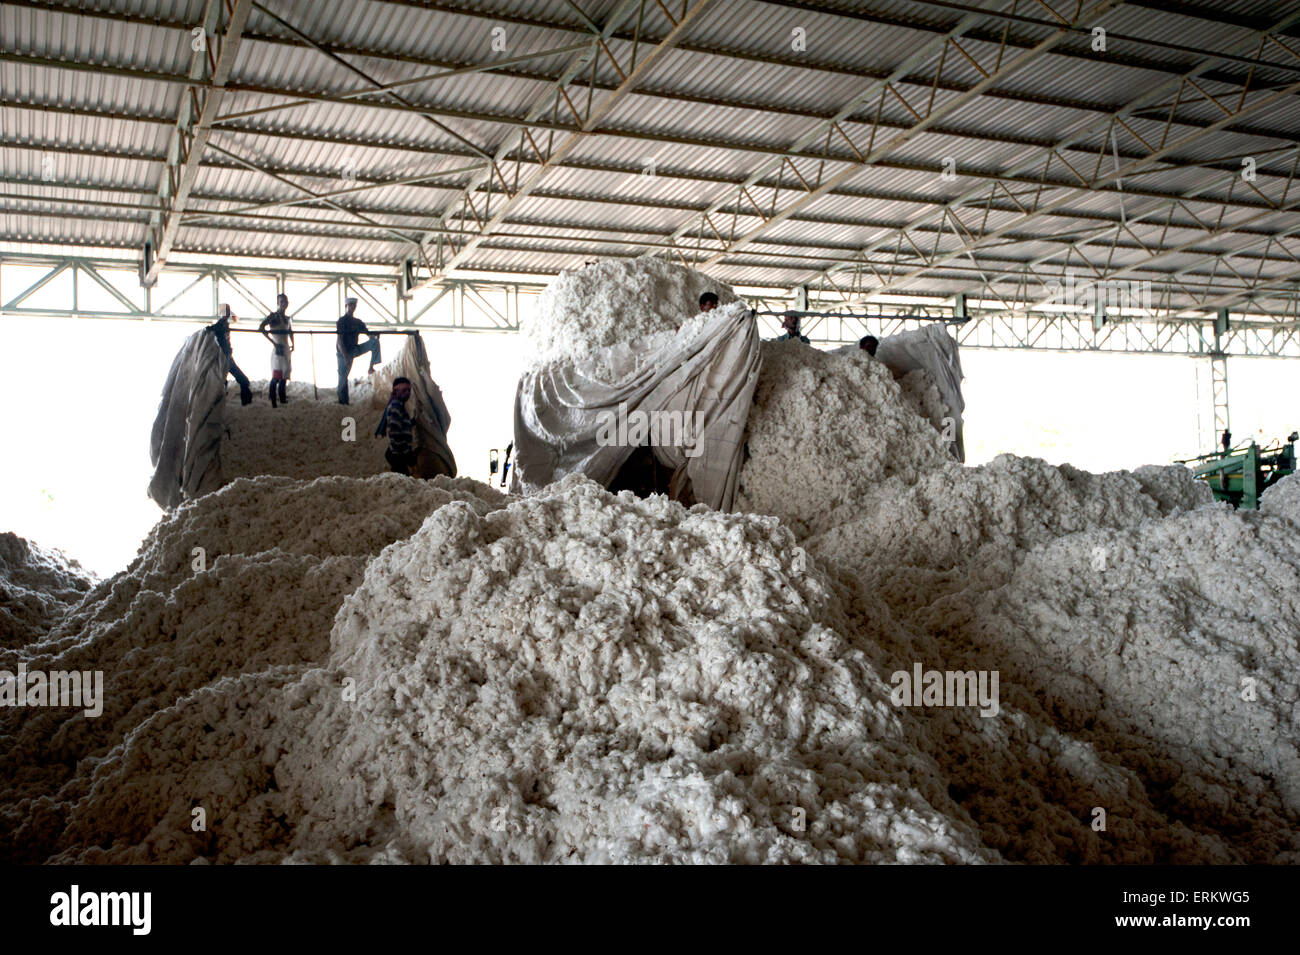 Men unloading newly picked cotton from trucks into huge heaps ready for factory processing, Rajkot district, Gujarat, - Stock Image